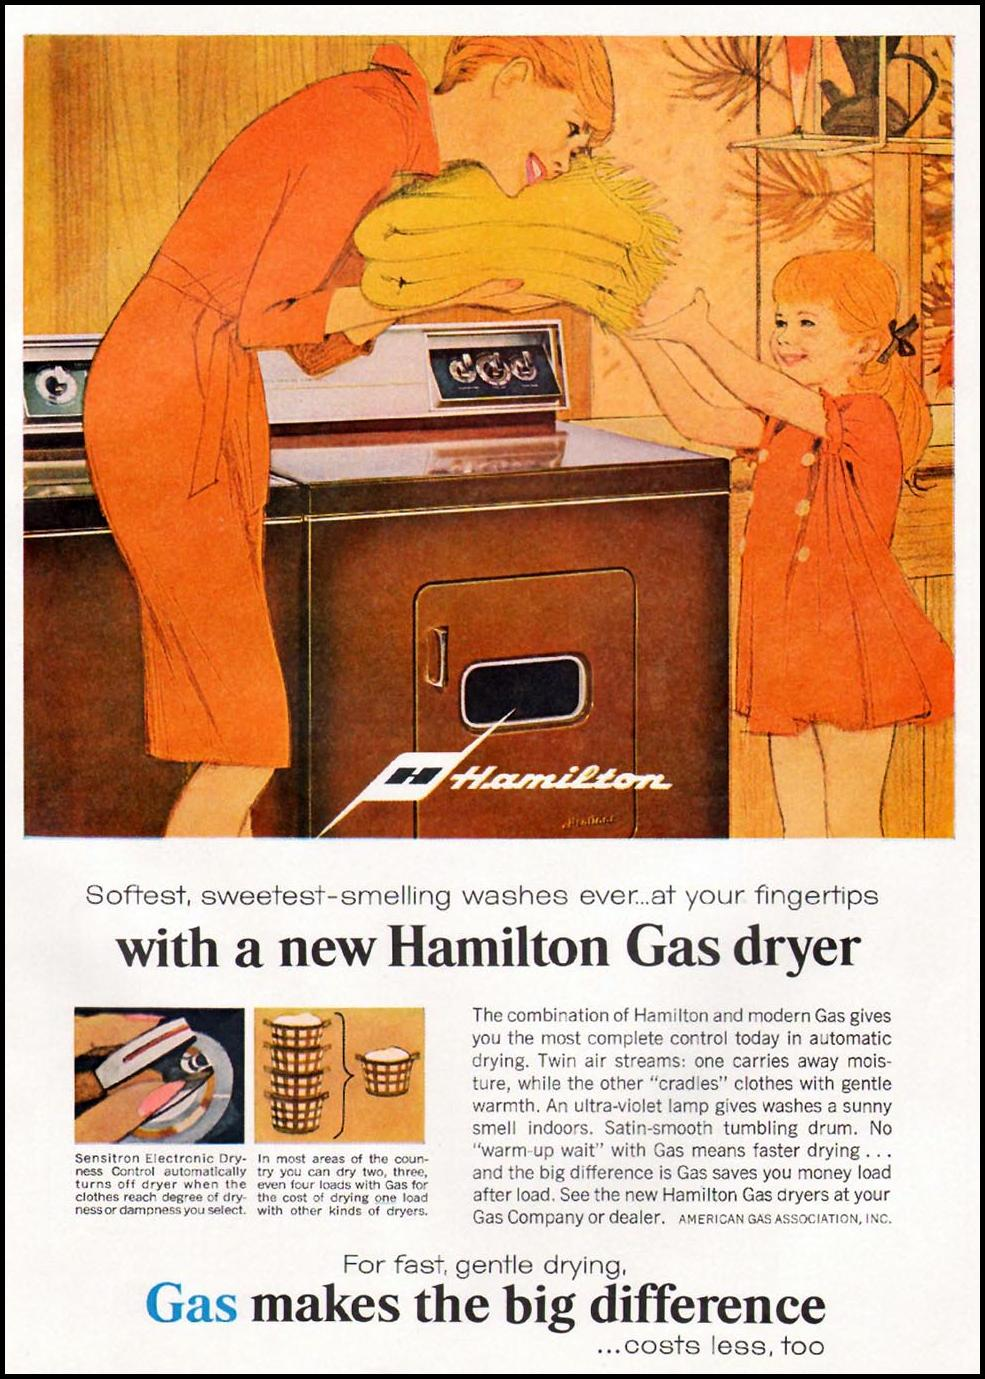 NATURAL GAS GOOD HOUSEKEEPING 10/01/1965 p. 225